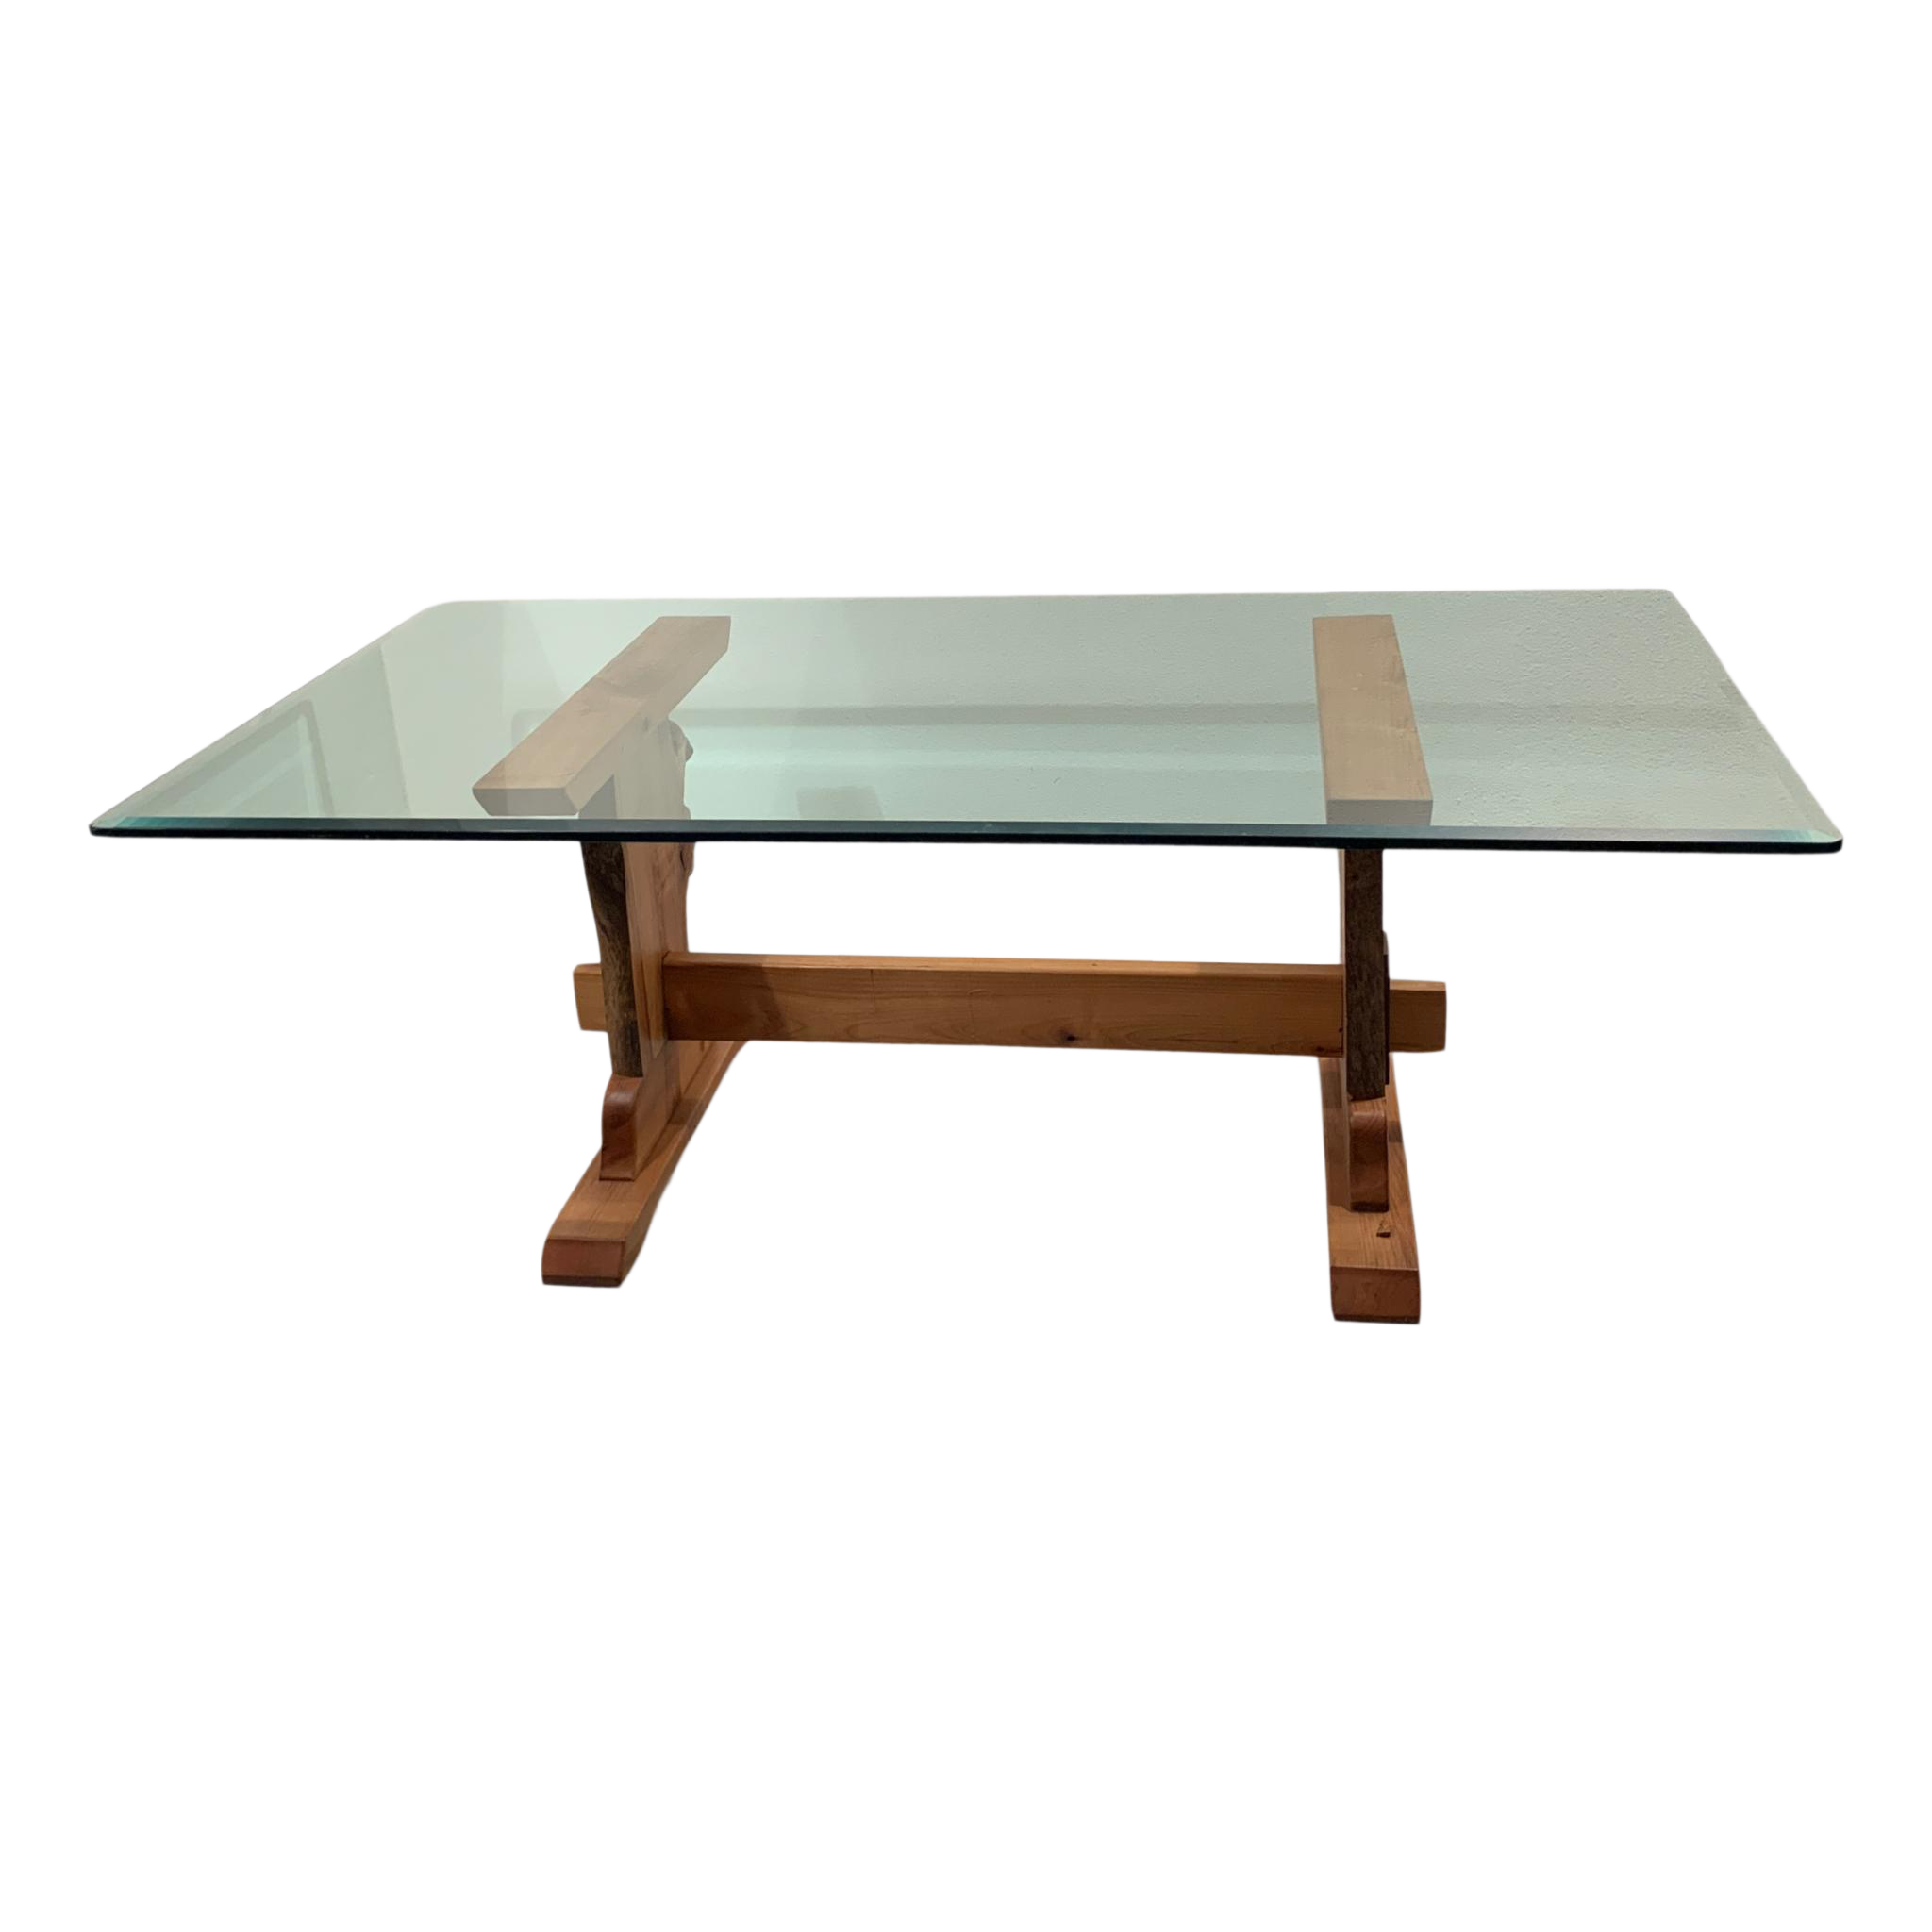 7 Ft Live Edge Trestle Table Base With Beveled Glass Top Chairish